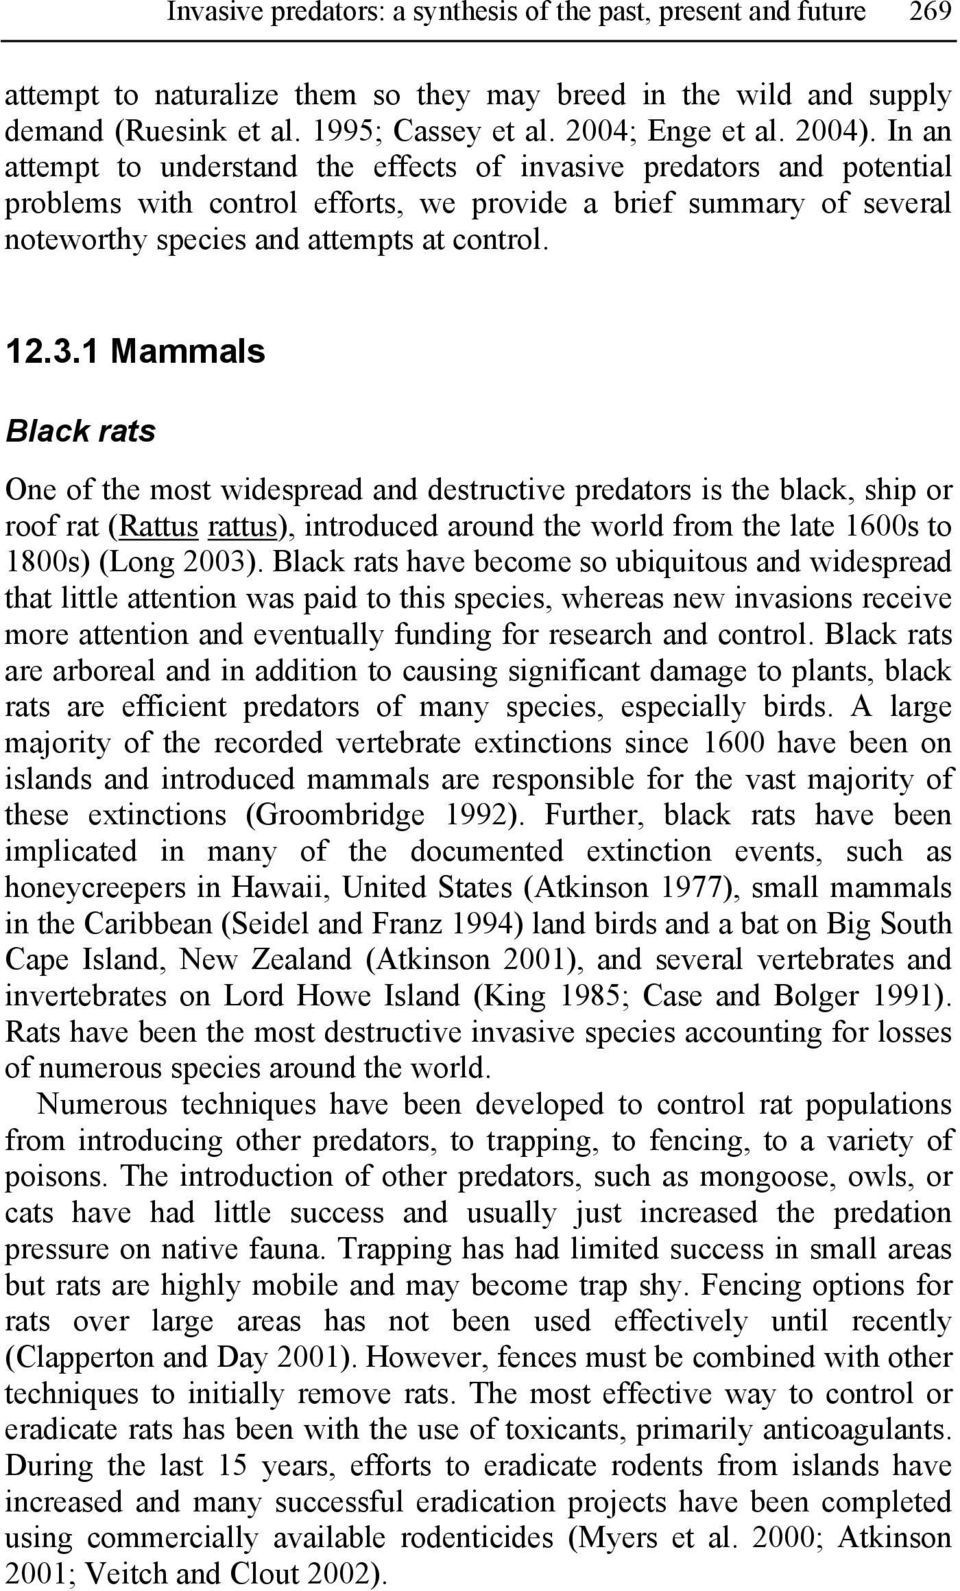 3.1 Mammals Black rats One of the most widespread and destructive predators is the black, ship or roof rat (Rattus rattus), introduced around the world from the late 1600s to 1800s) (Long 2003).